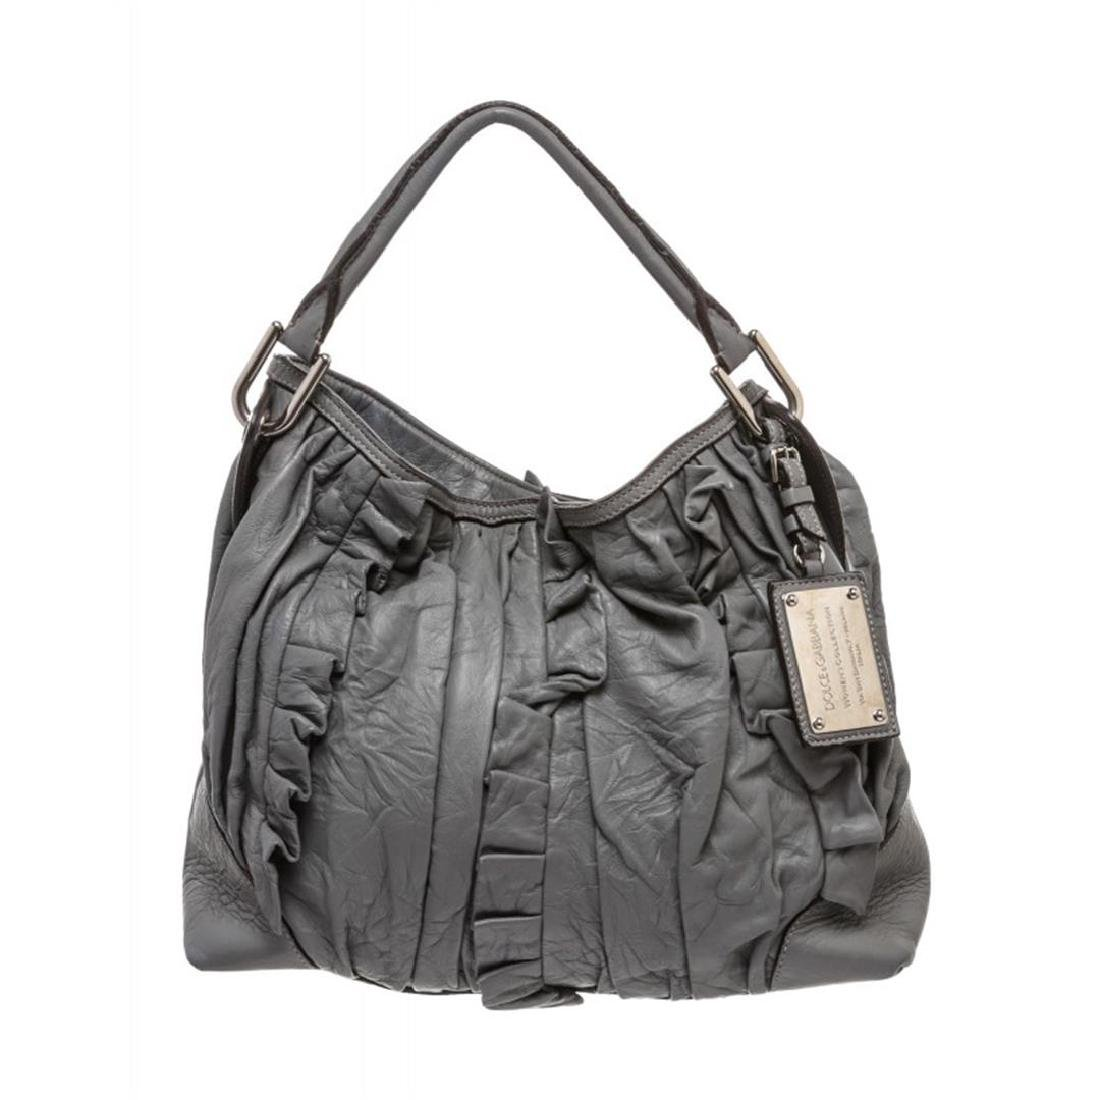 Dolce & Gabbana Gray Leather Ruffle Miss Brooke Ruffle